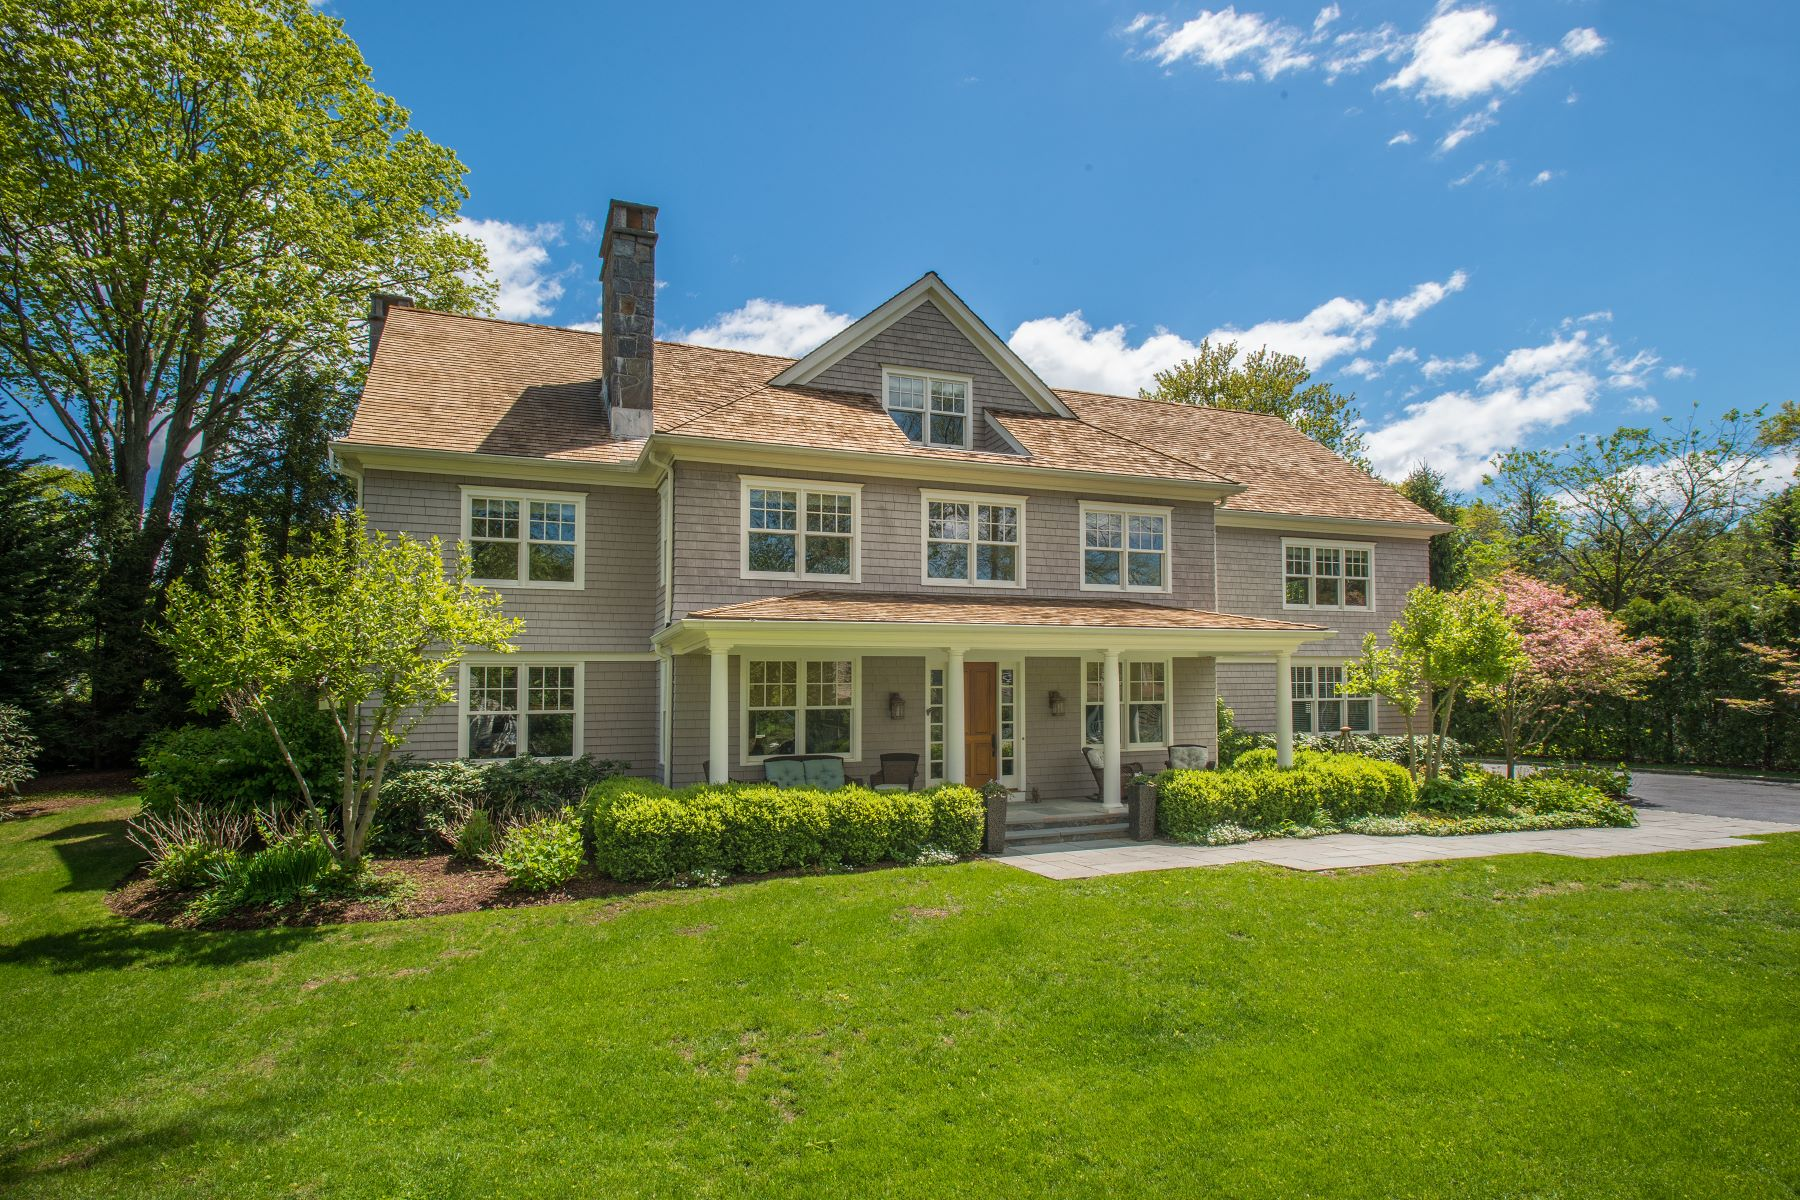 Single Family Homes for Sale at 16 Seagate Road Darien, Connecticut 06820 United States